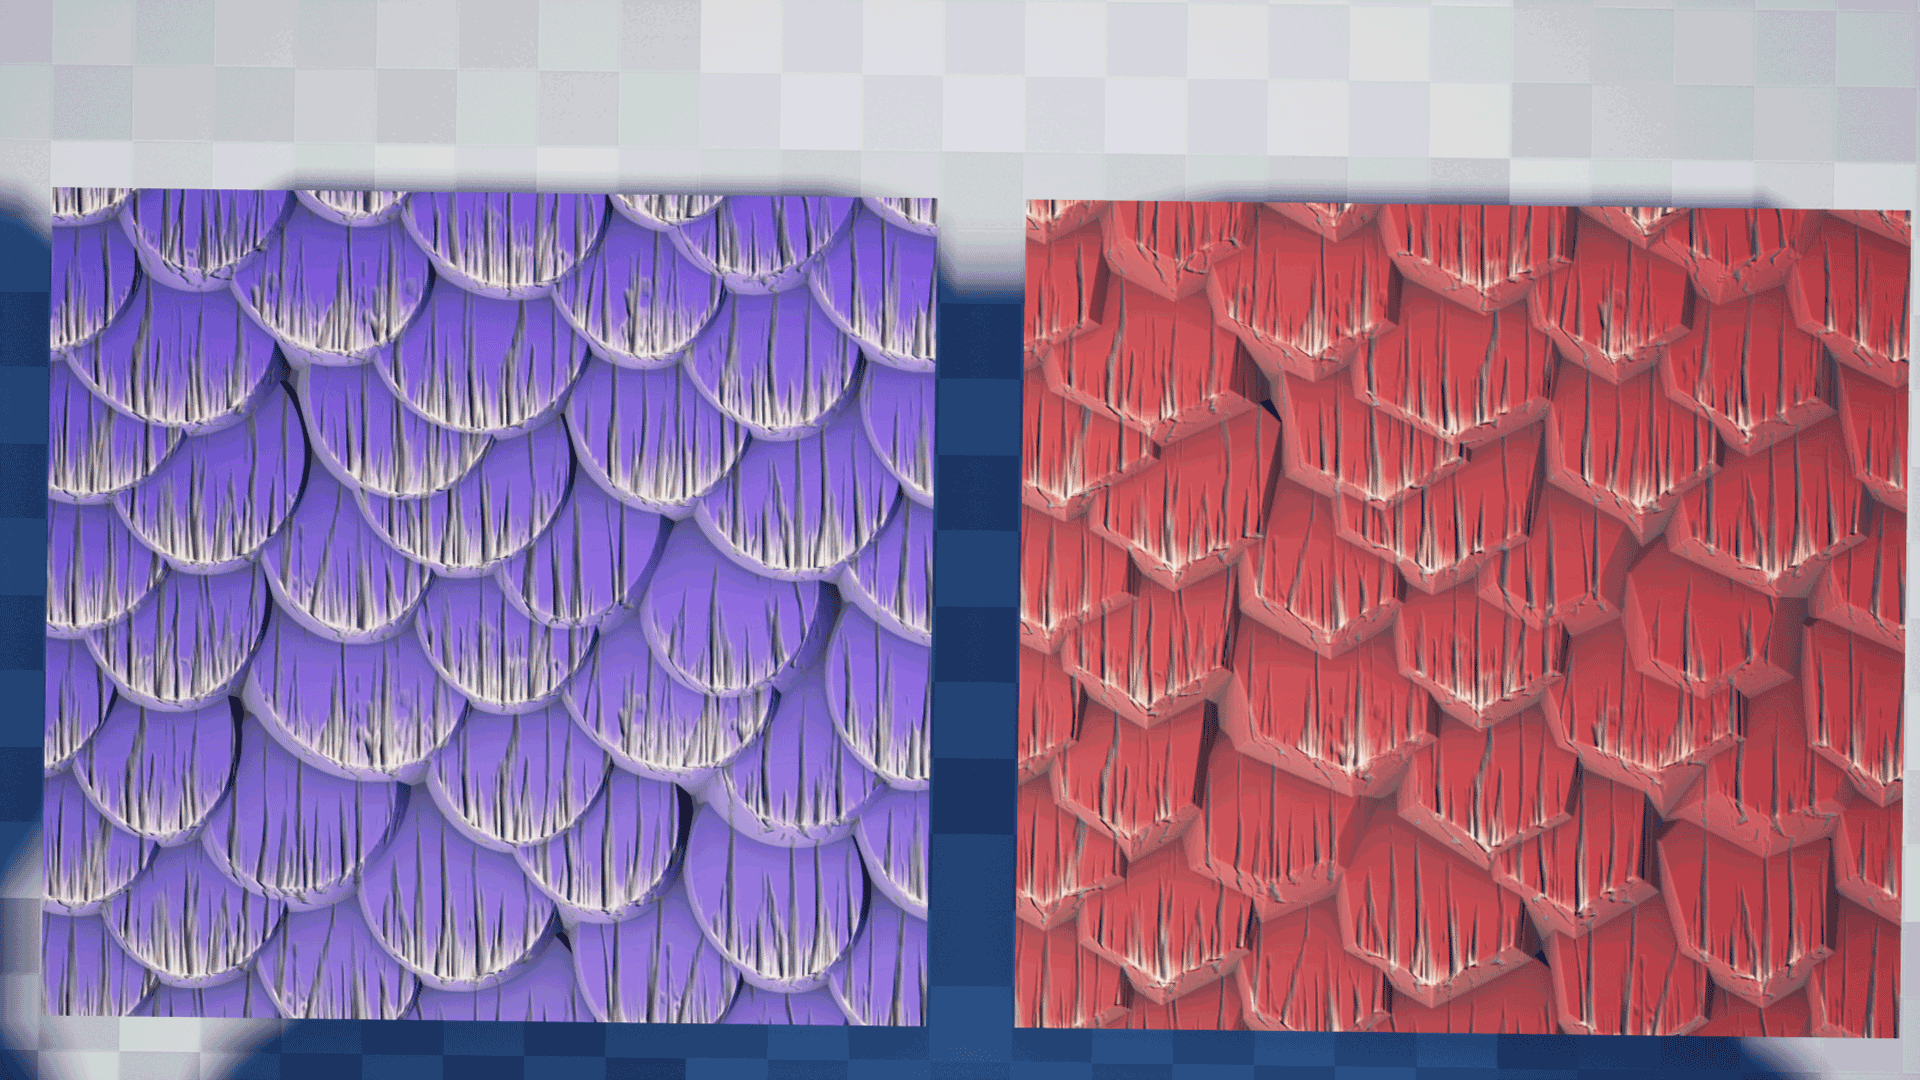 Stylized Wood Shingles Substance Pack by Peter Severud in Materials